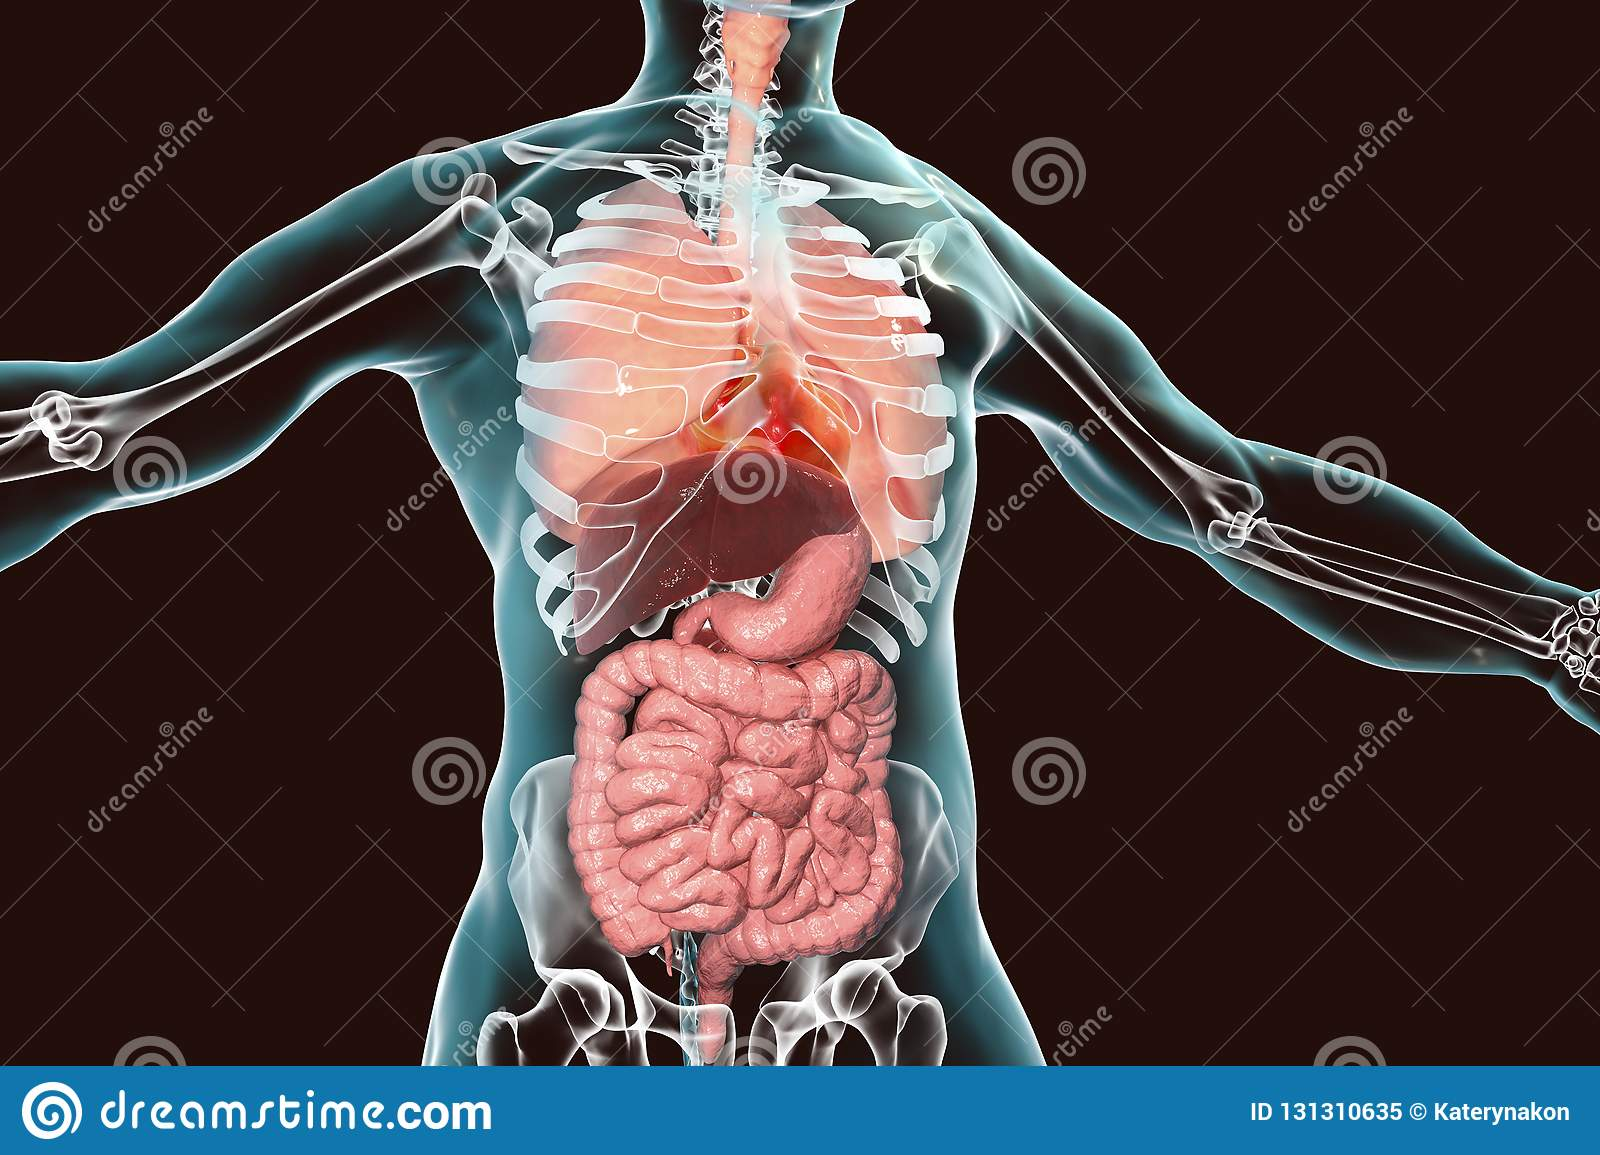 hight resolution of human body anatomy respiratory and digestive system